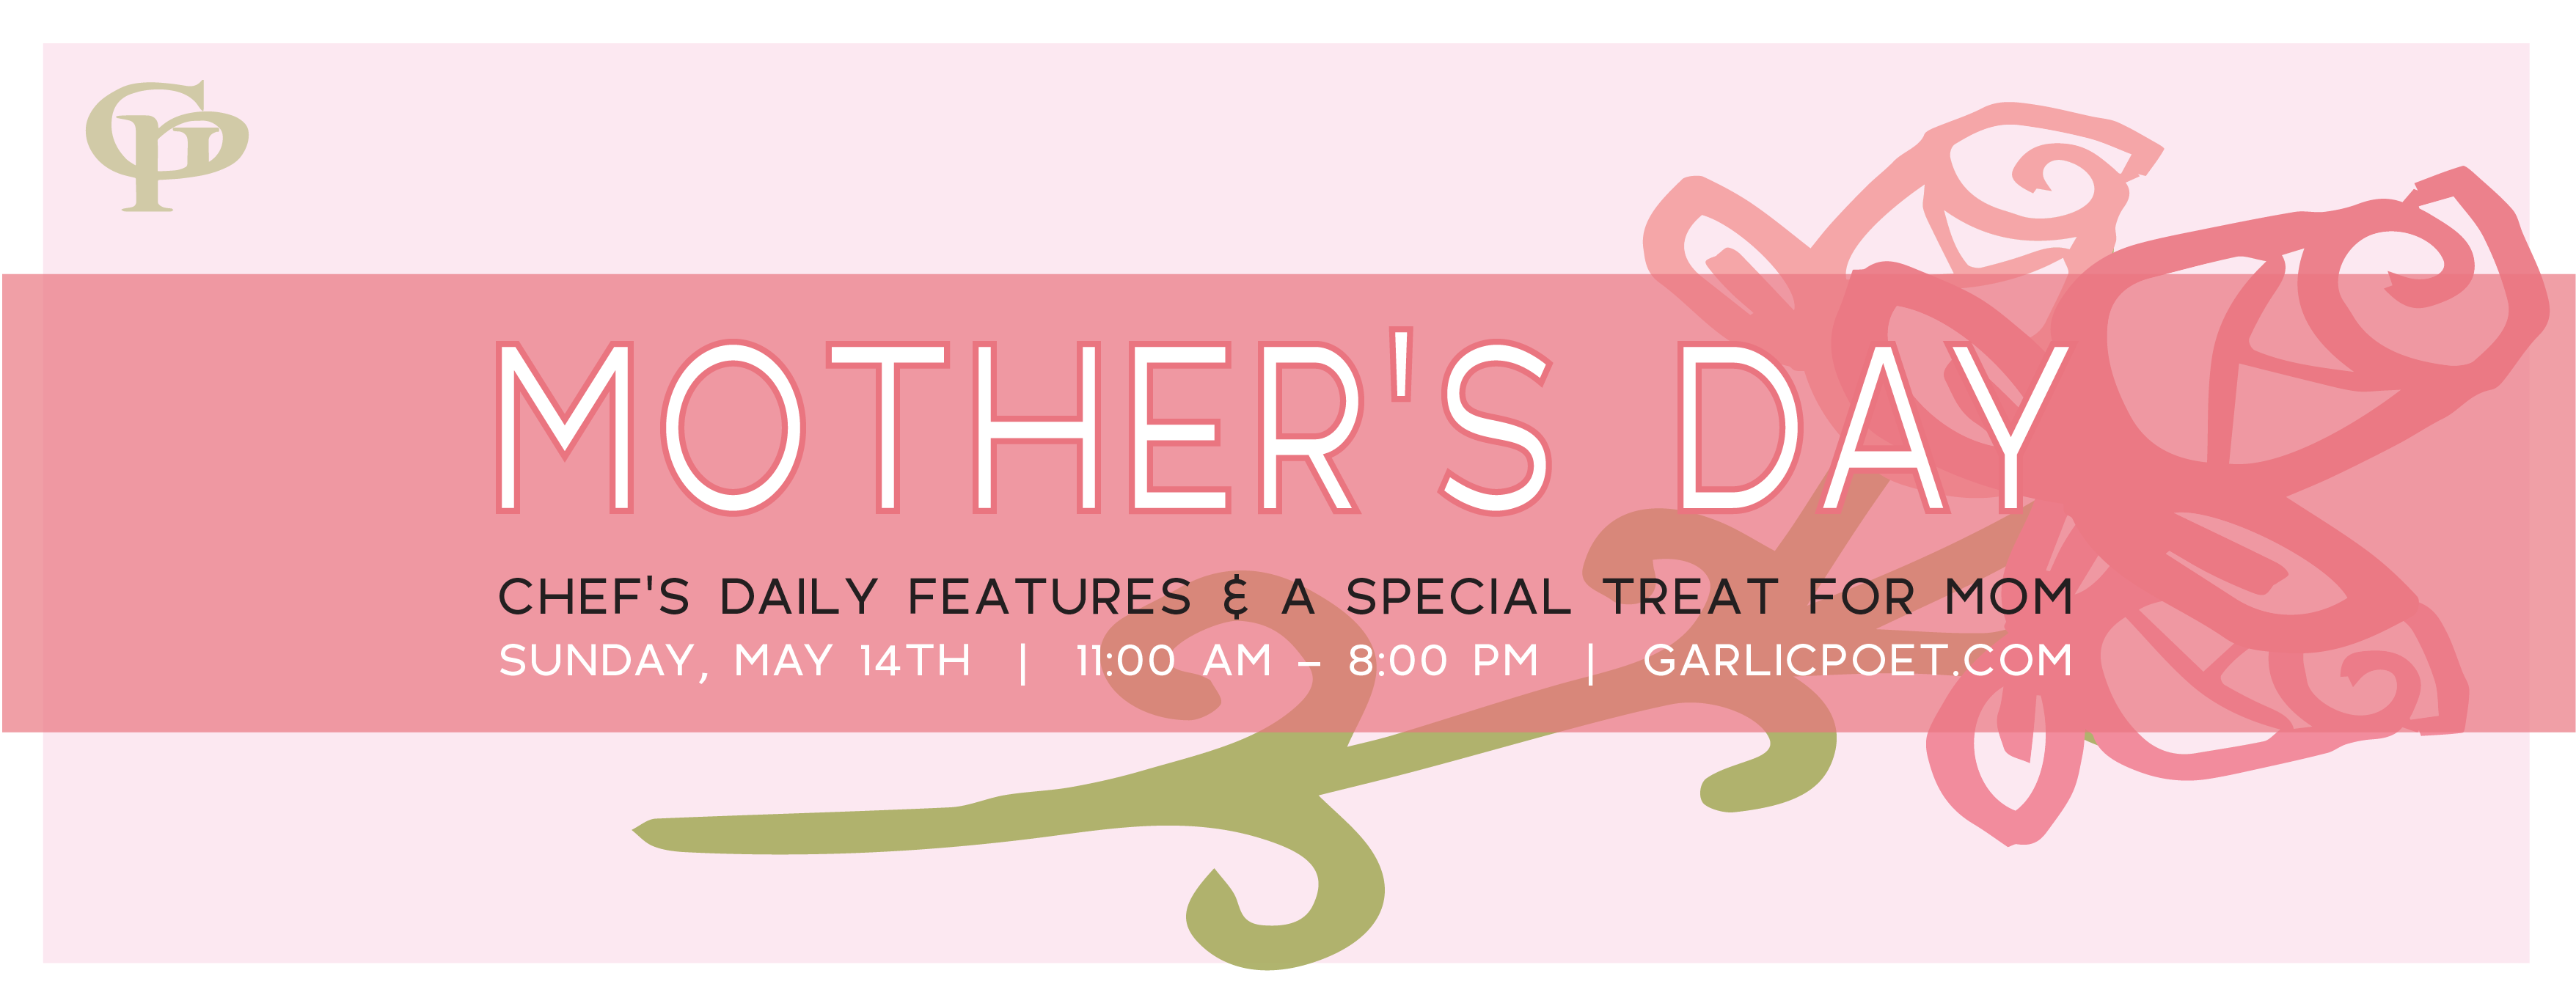 Mother's Day at The Garlic Poet